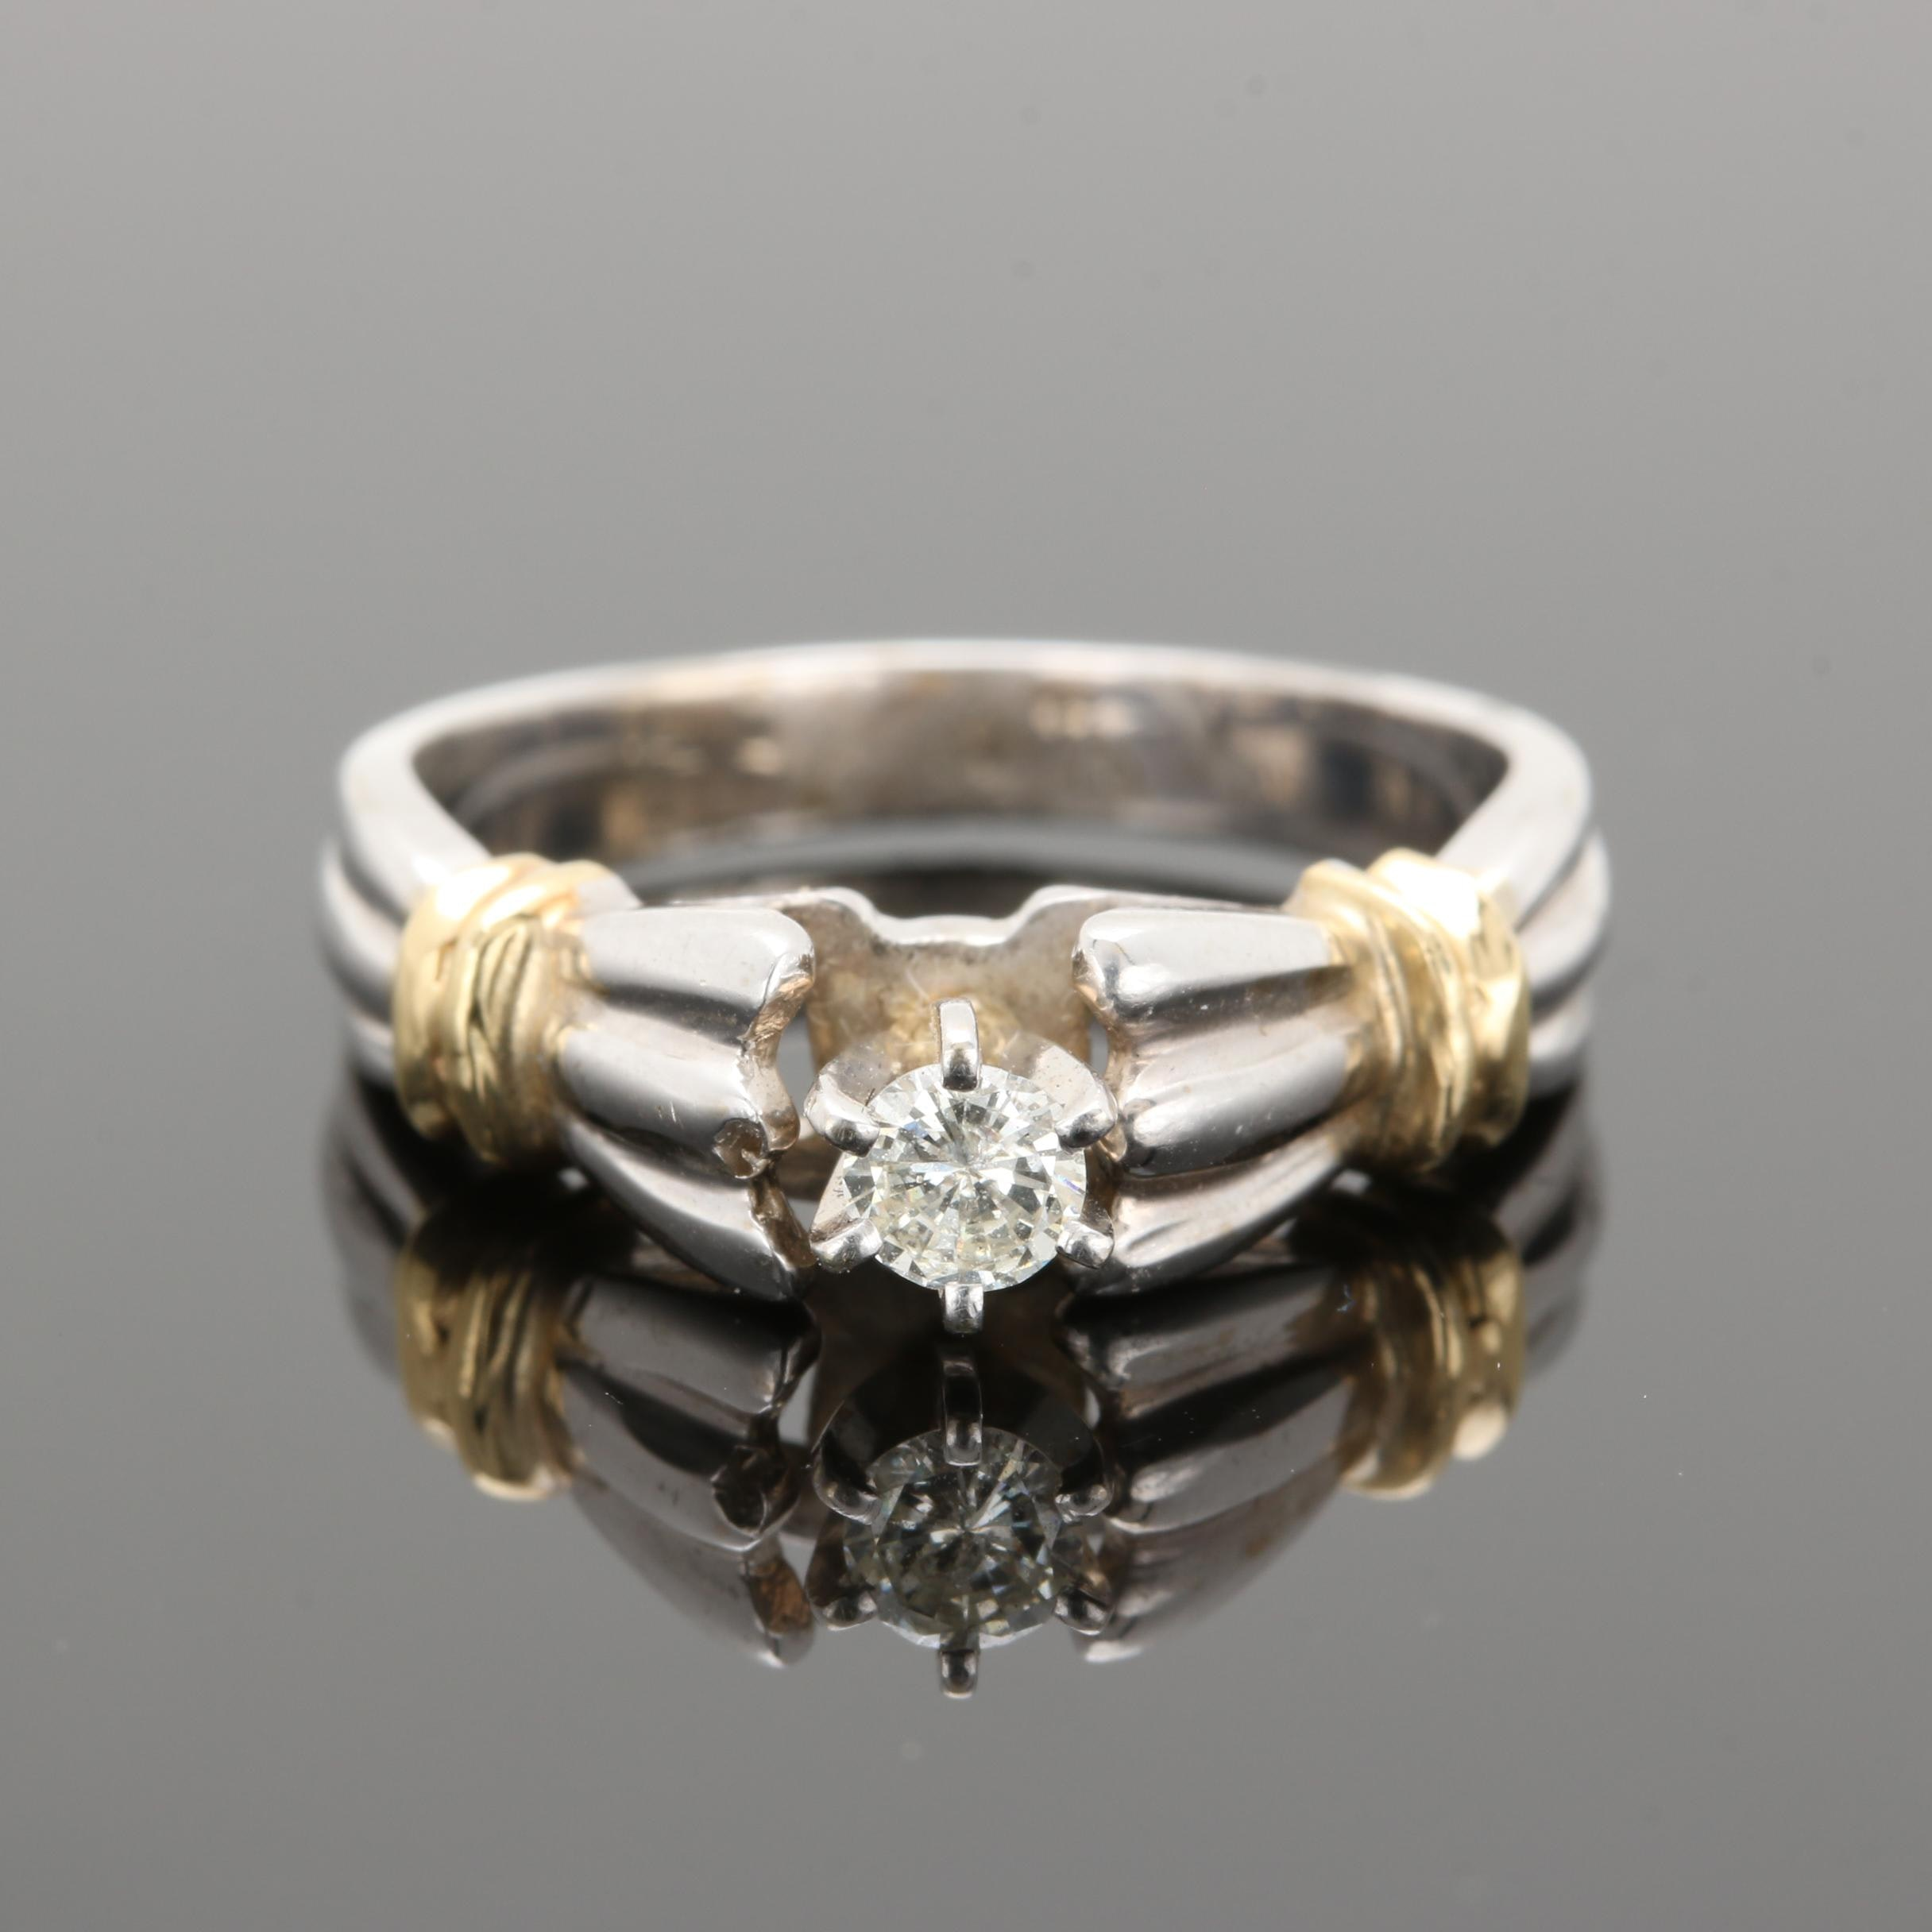 14K White Gold Diamond Ring with 14K Yellow Gold Accents